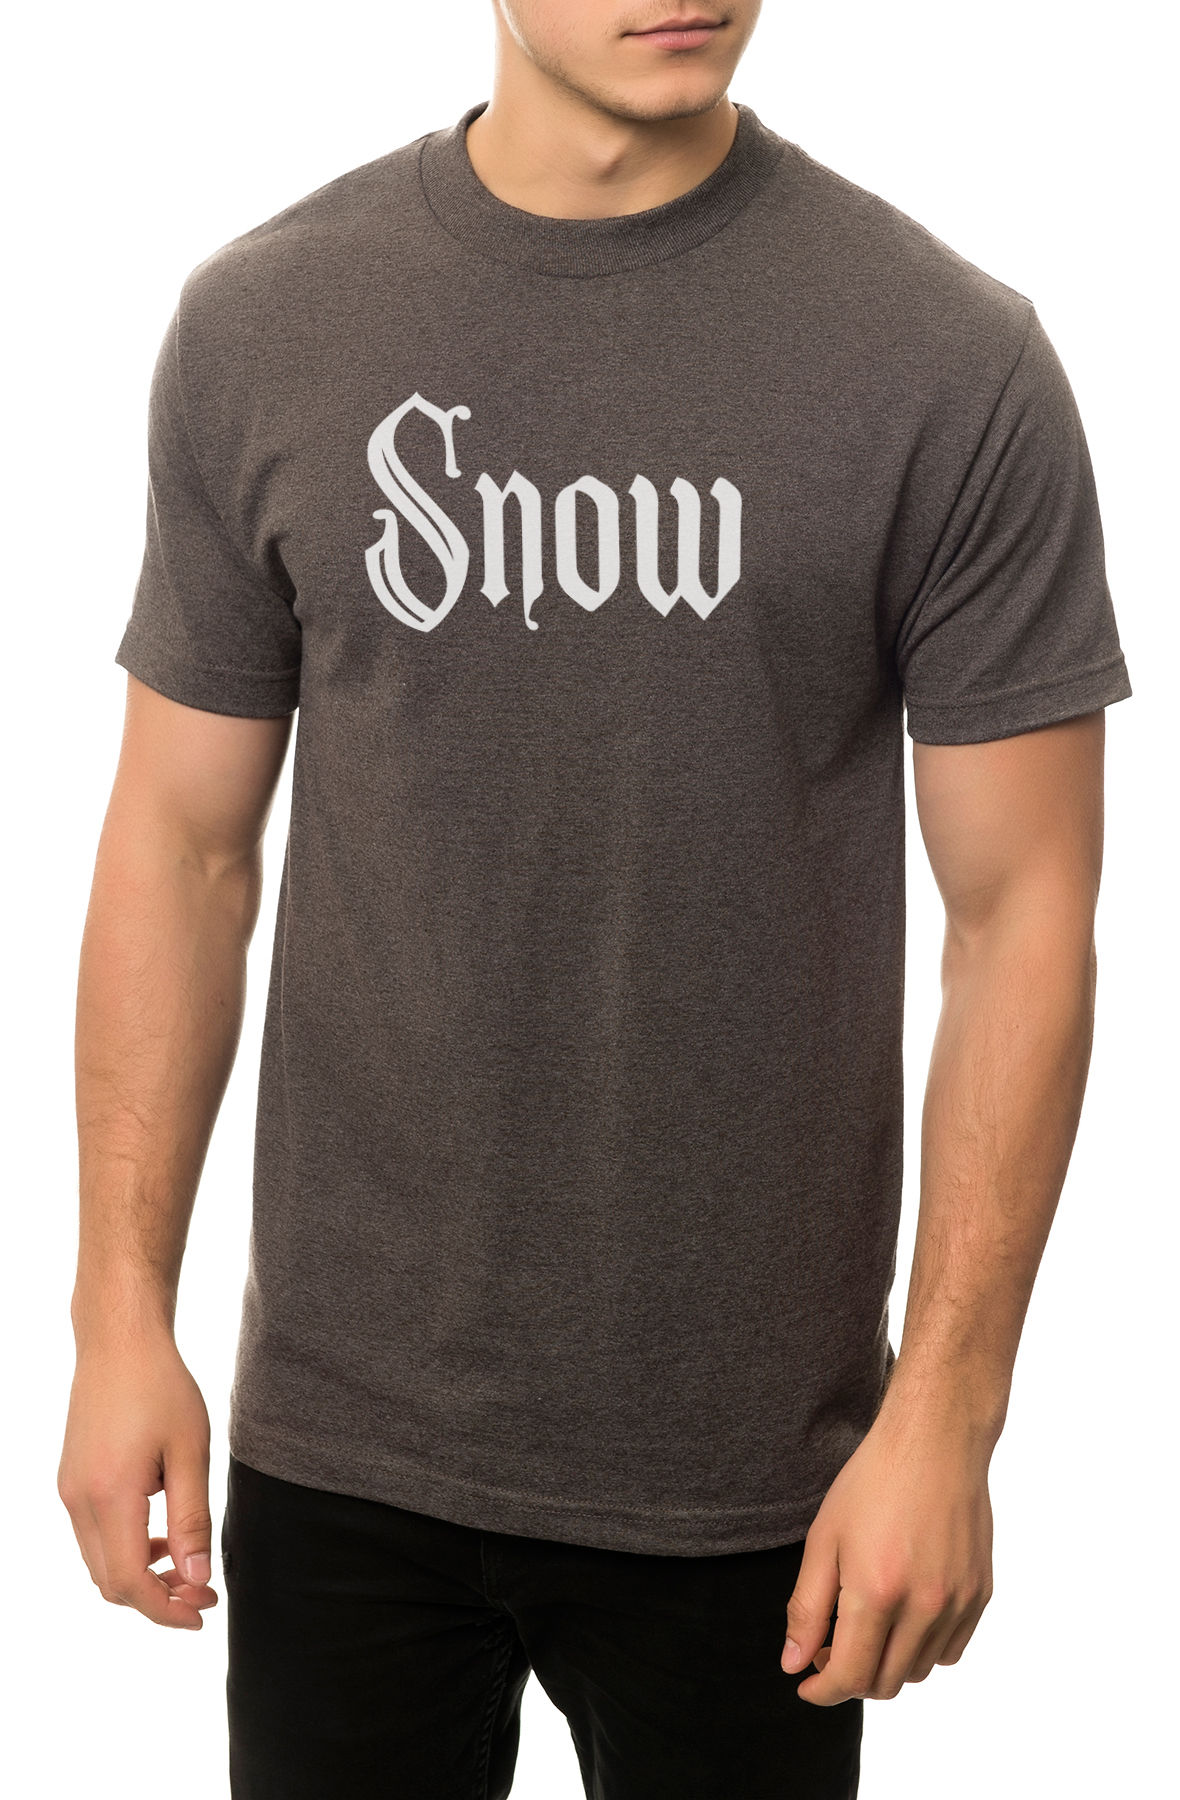 Image of The Snow Girl Tee in Charcoal Heather